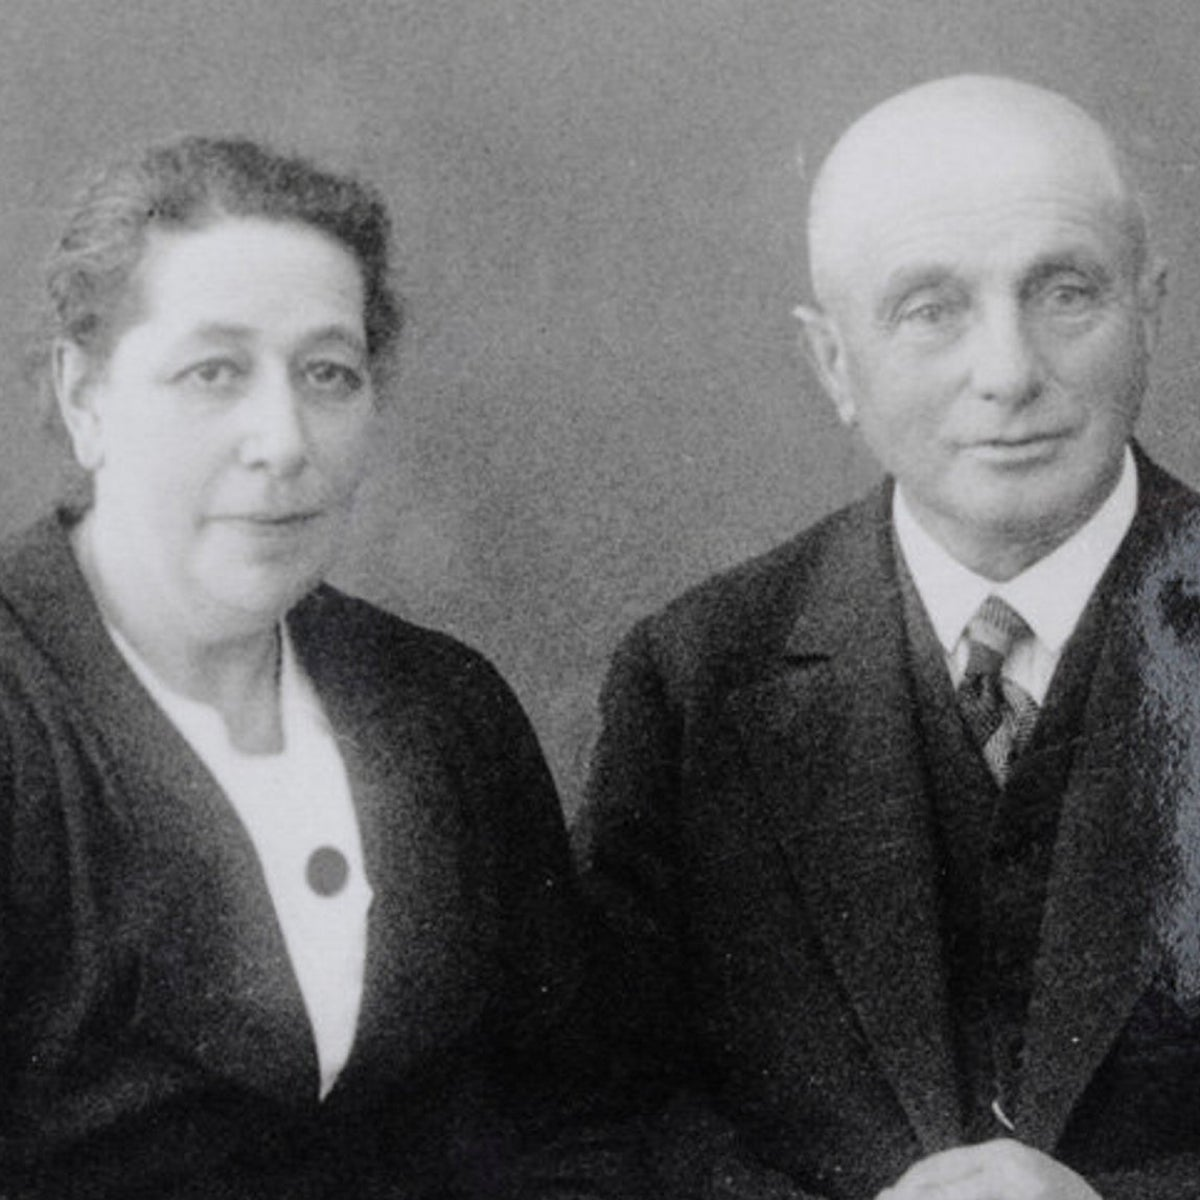 Josephine and Leopold Bähr in the 1930s.